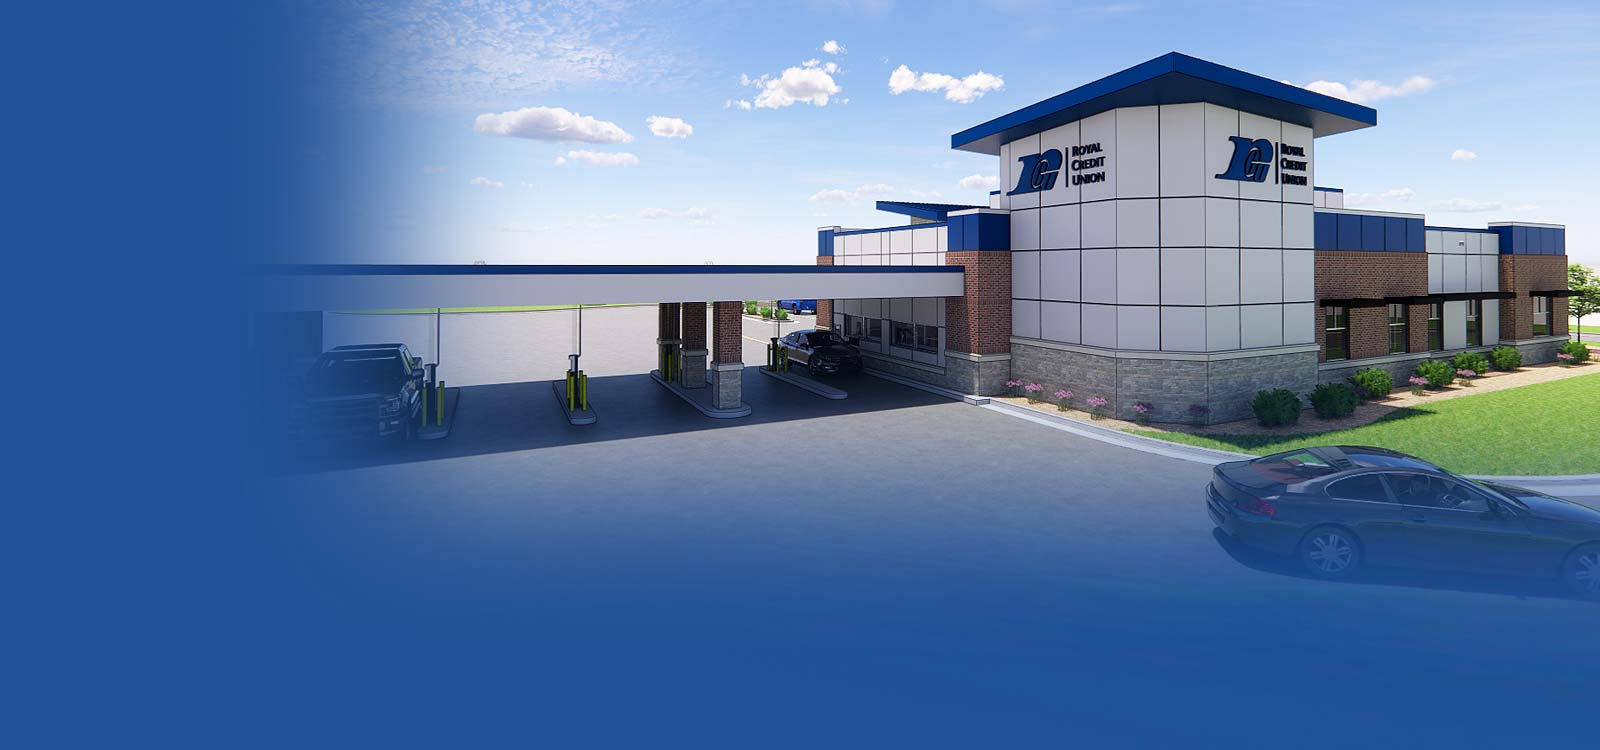 Rendering of the new Altoona Office